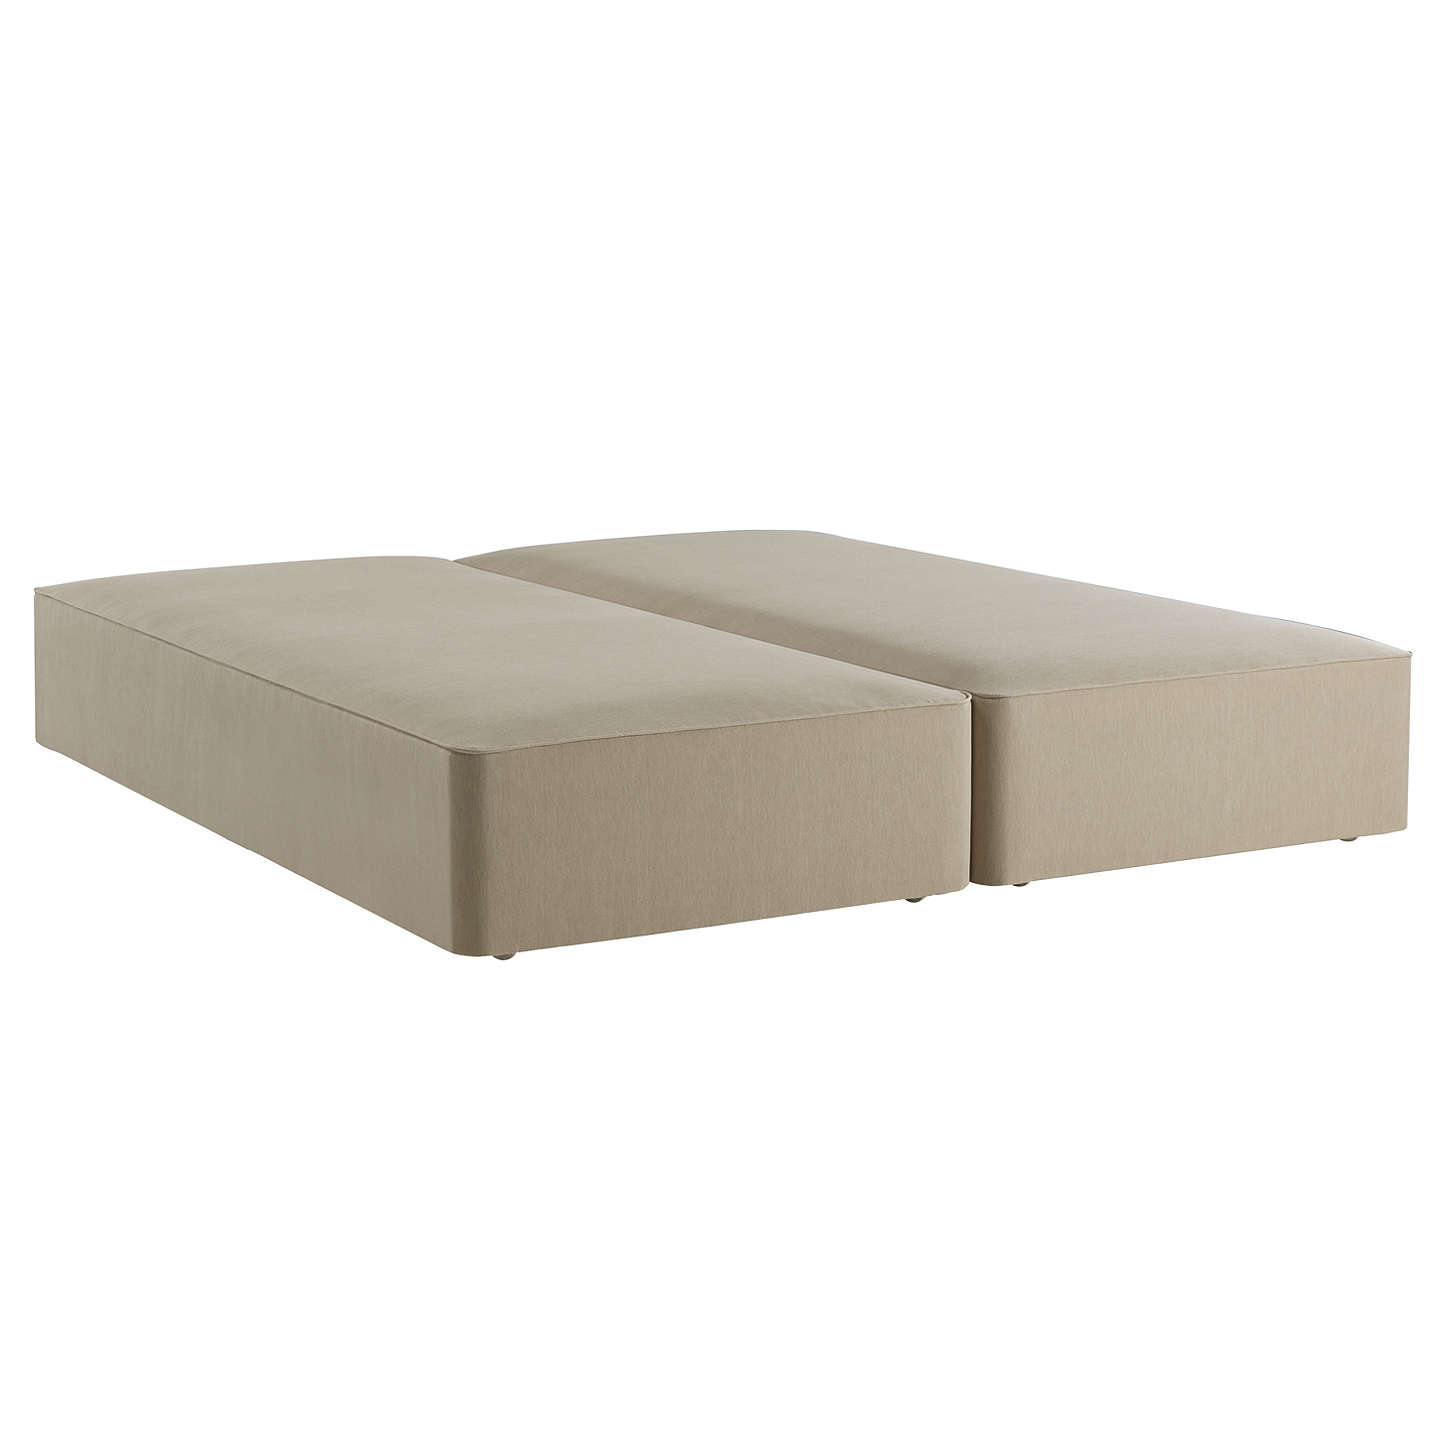 John Lewis Luxury True Edge Divan Base, Pebble Canvas, King Size